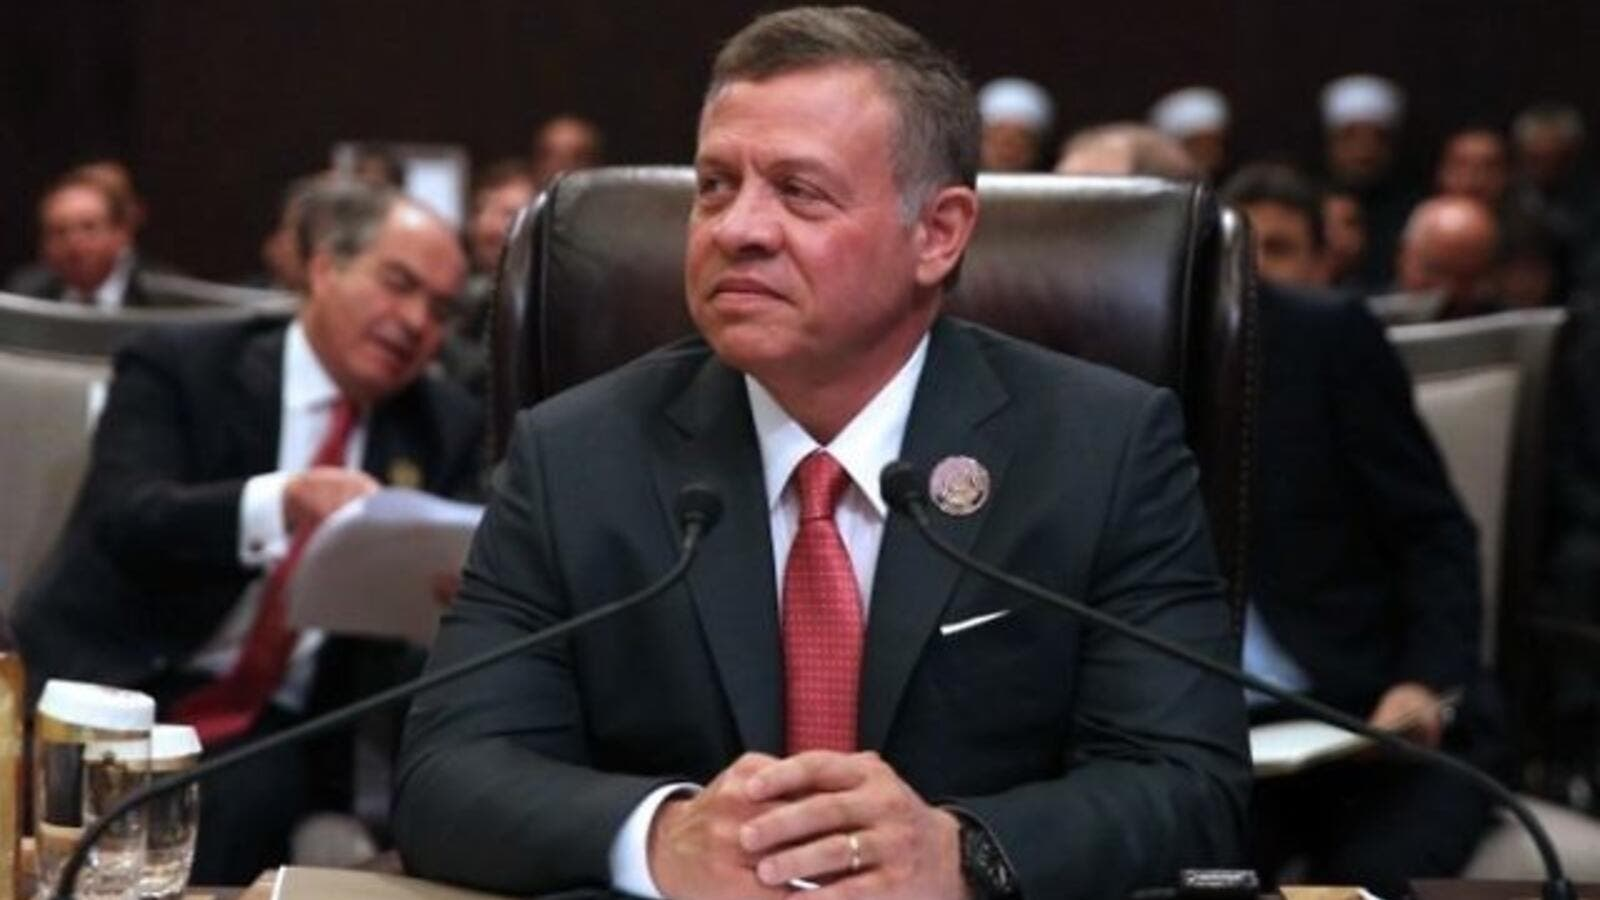 King Abdullah of Jordan will join leaders from around the world in an economic forum. (AFP/ File photo)